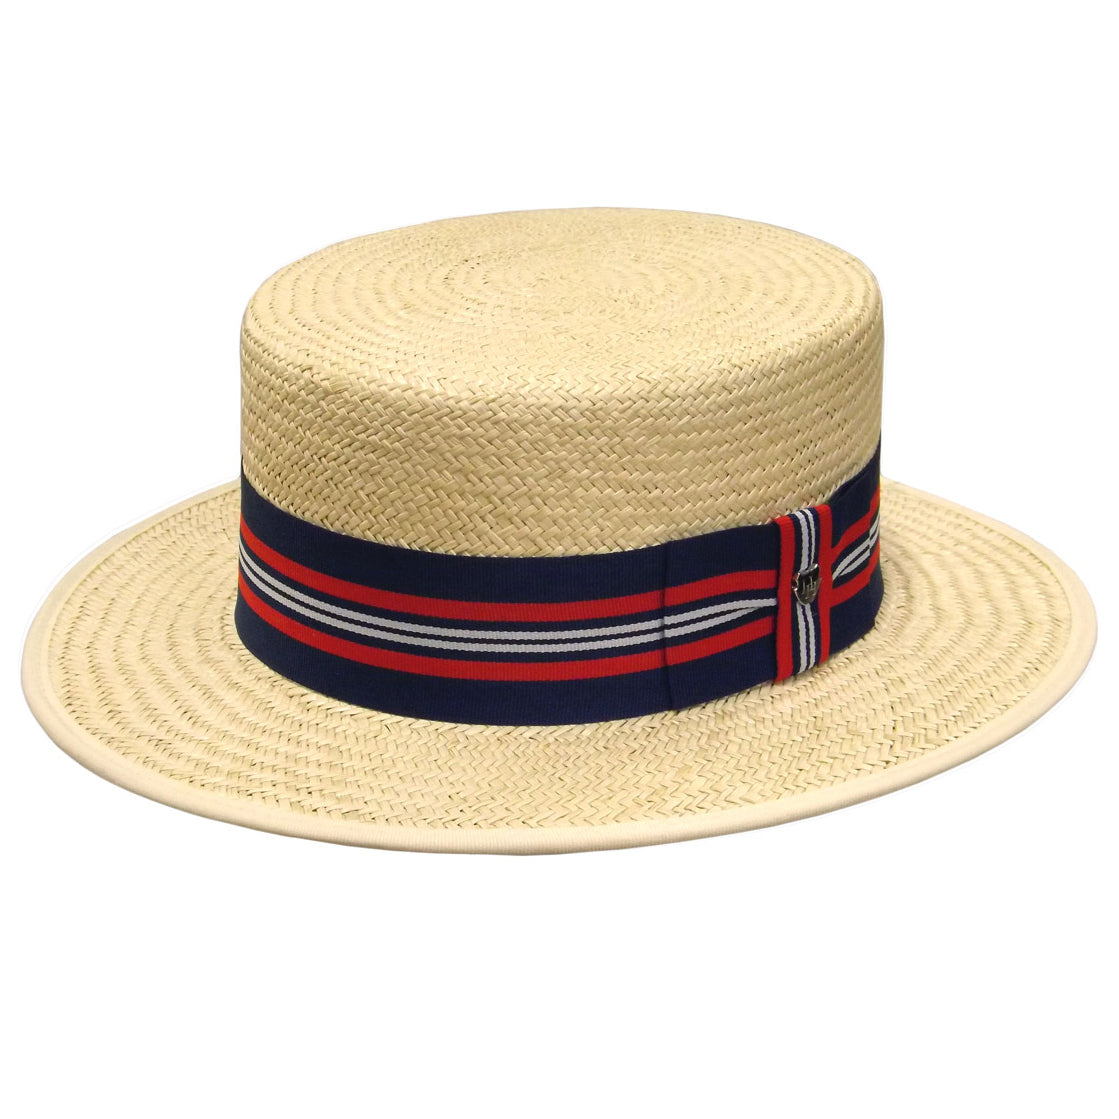 Hills Double Palm Boater Hat